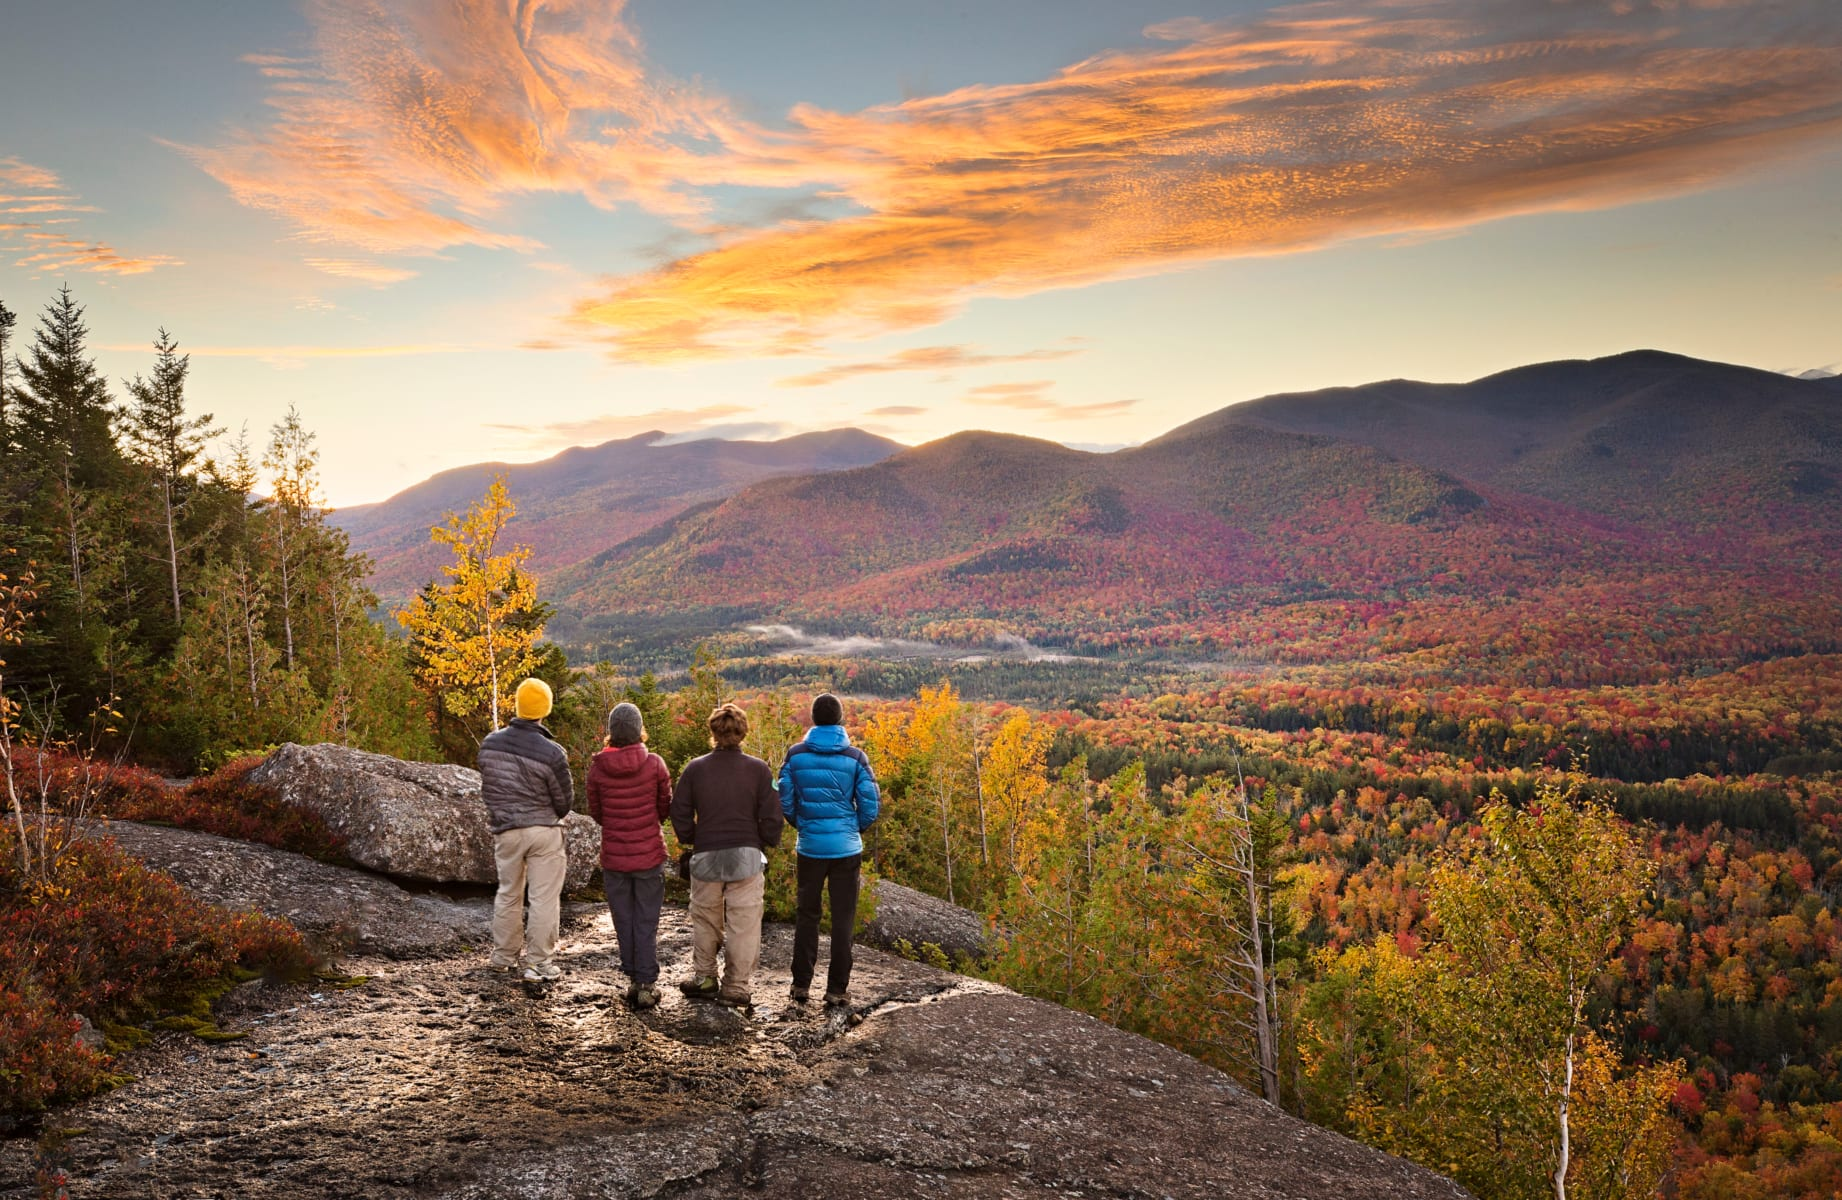 Group of people taking in beautiful Adirondack vista while hiking in autumn.